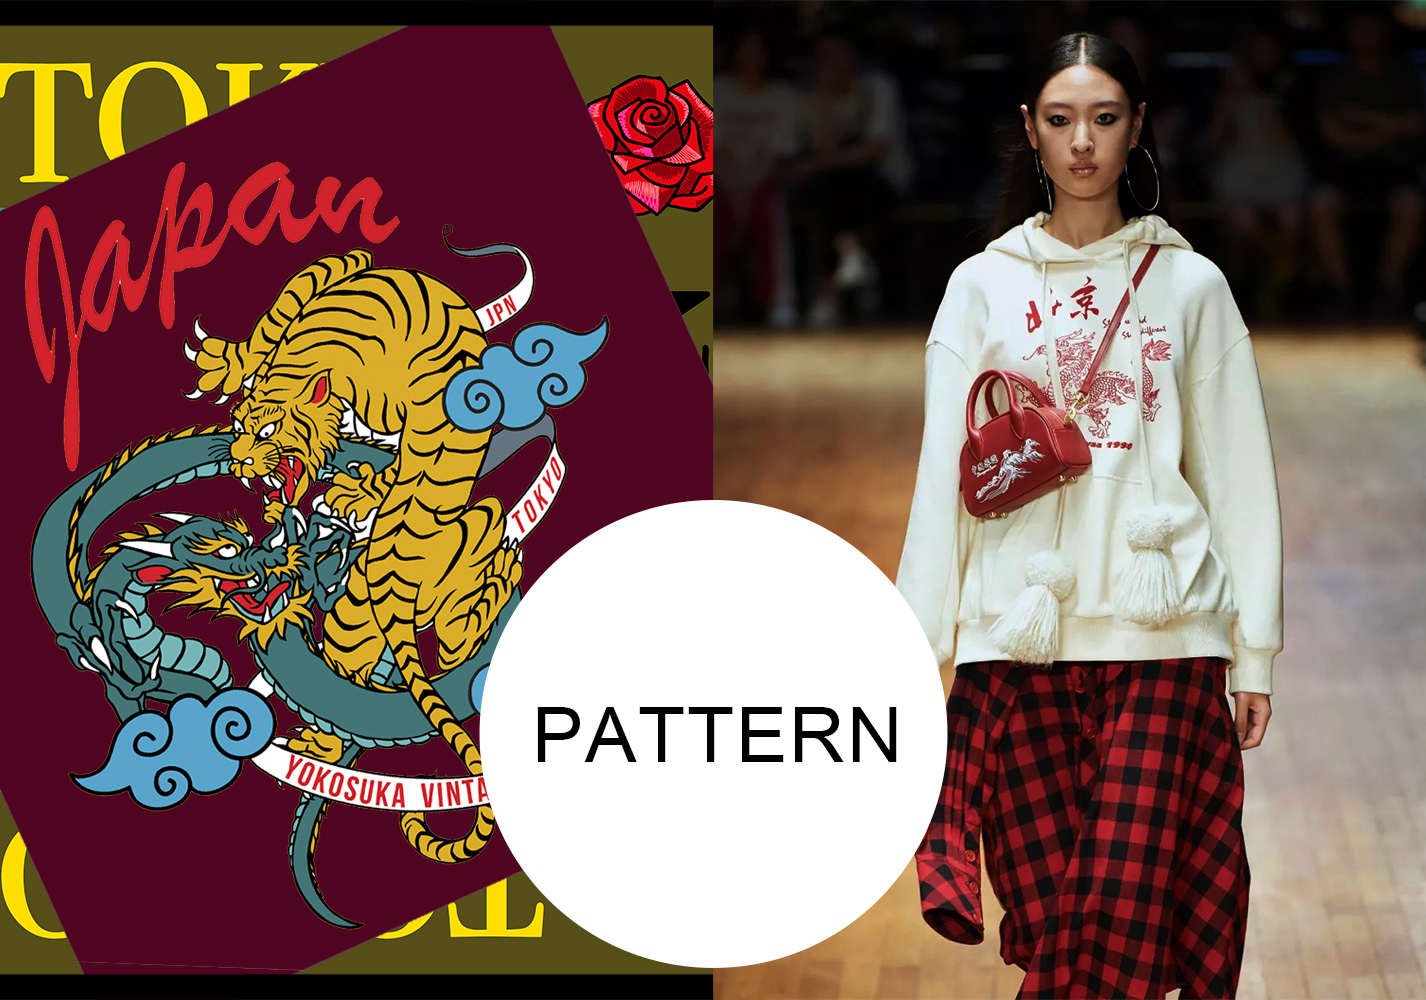 Dragon -- Pattern Trend of 20/21 A/W Womenswear